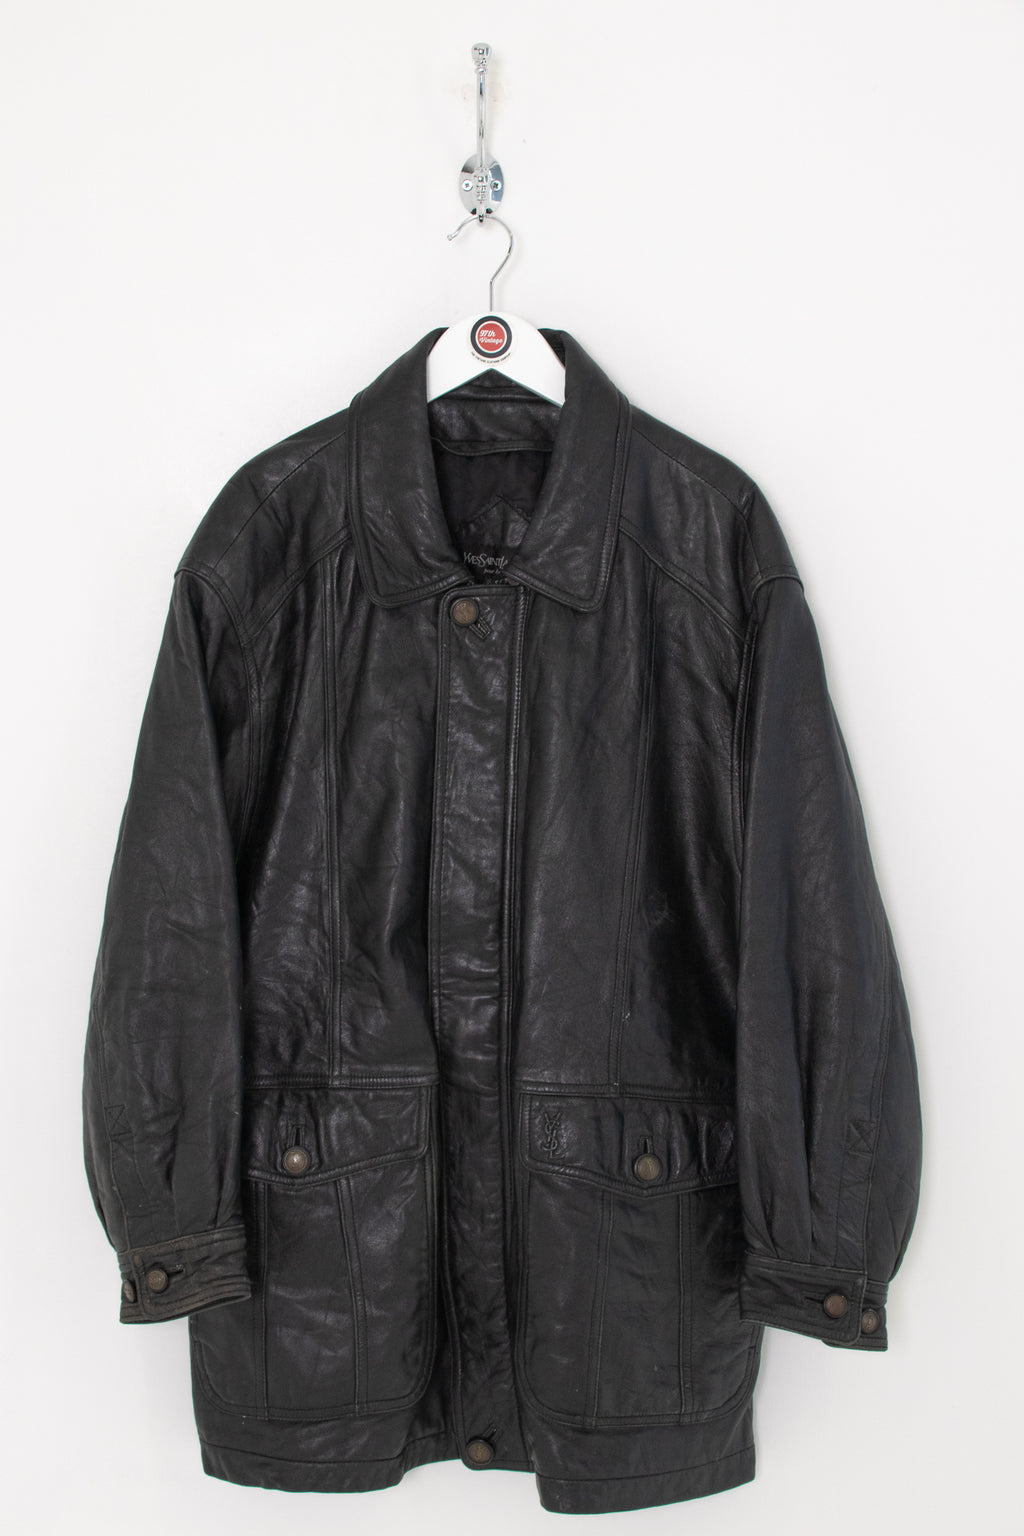 YSL Leather Jacket (L)